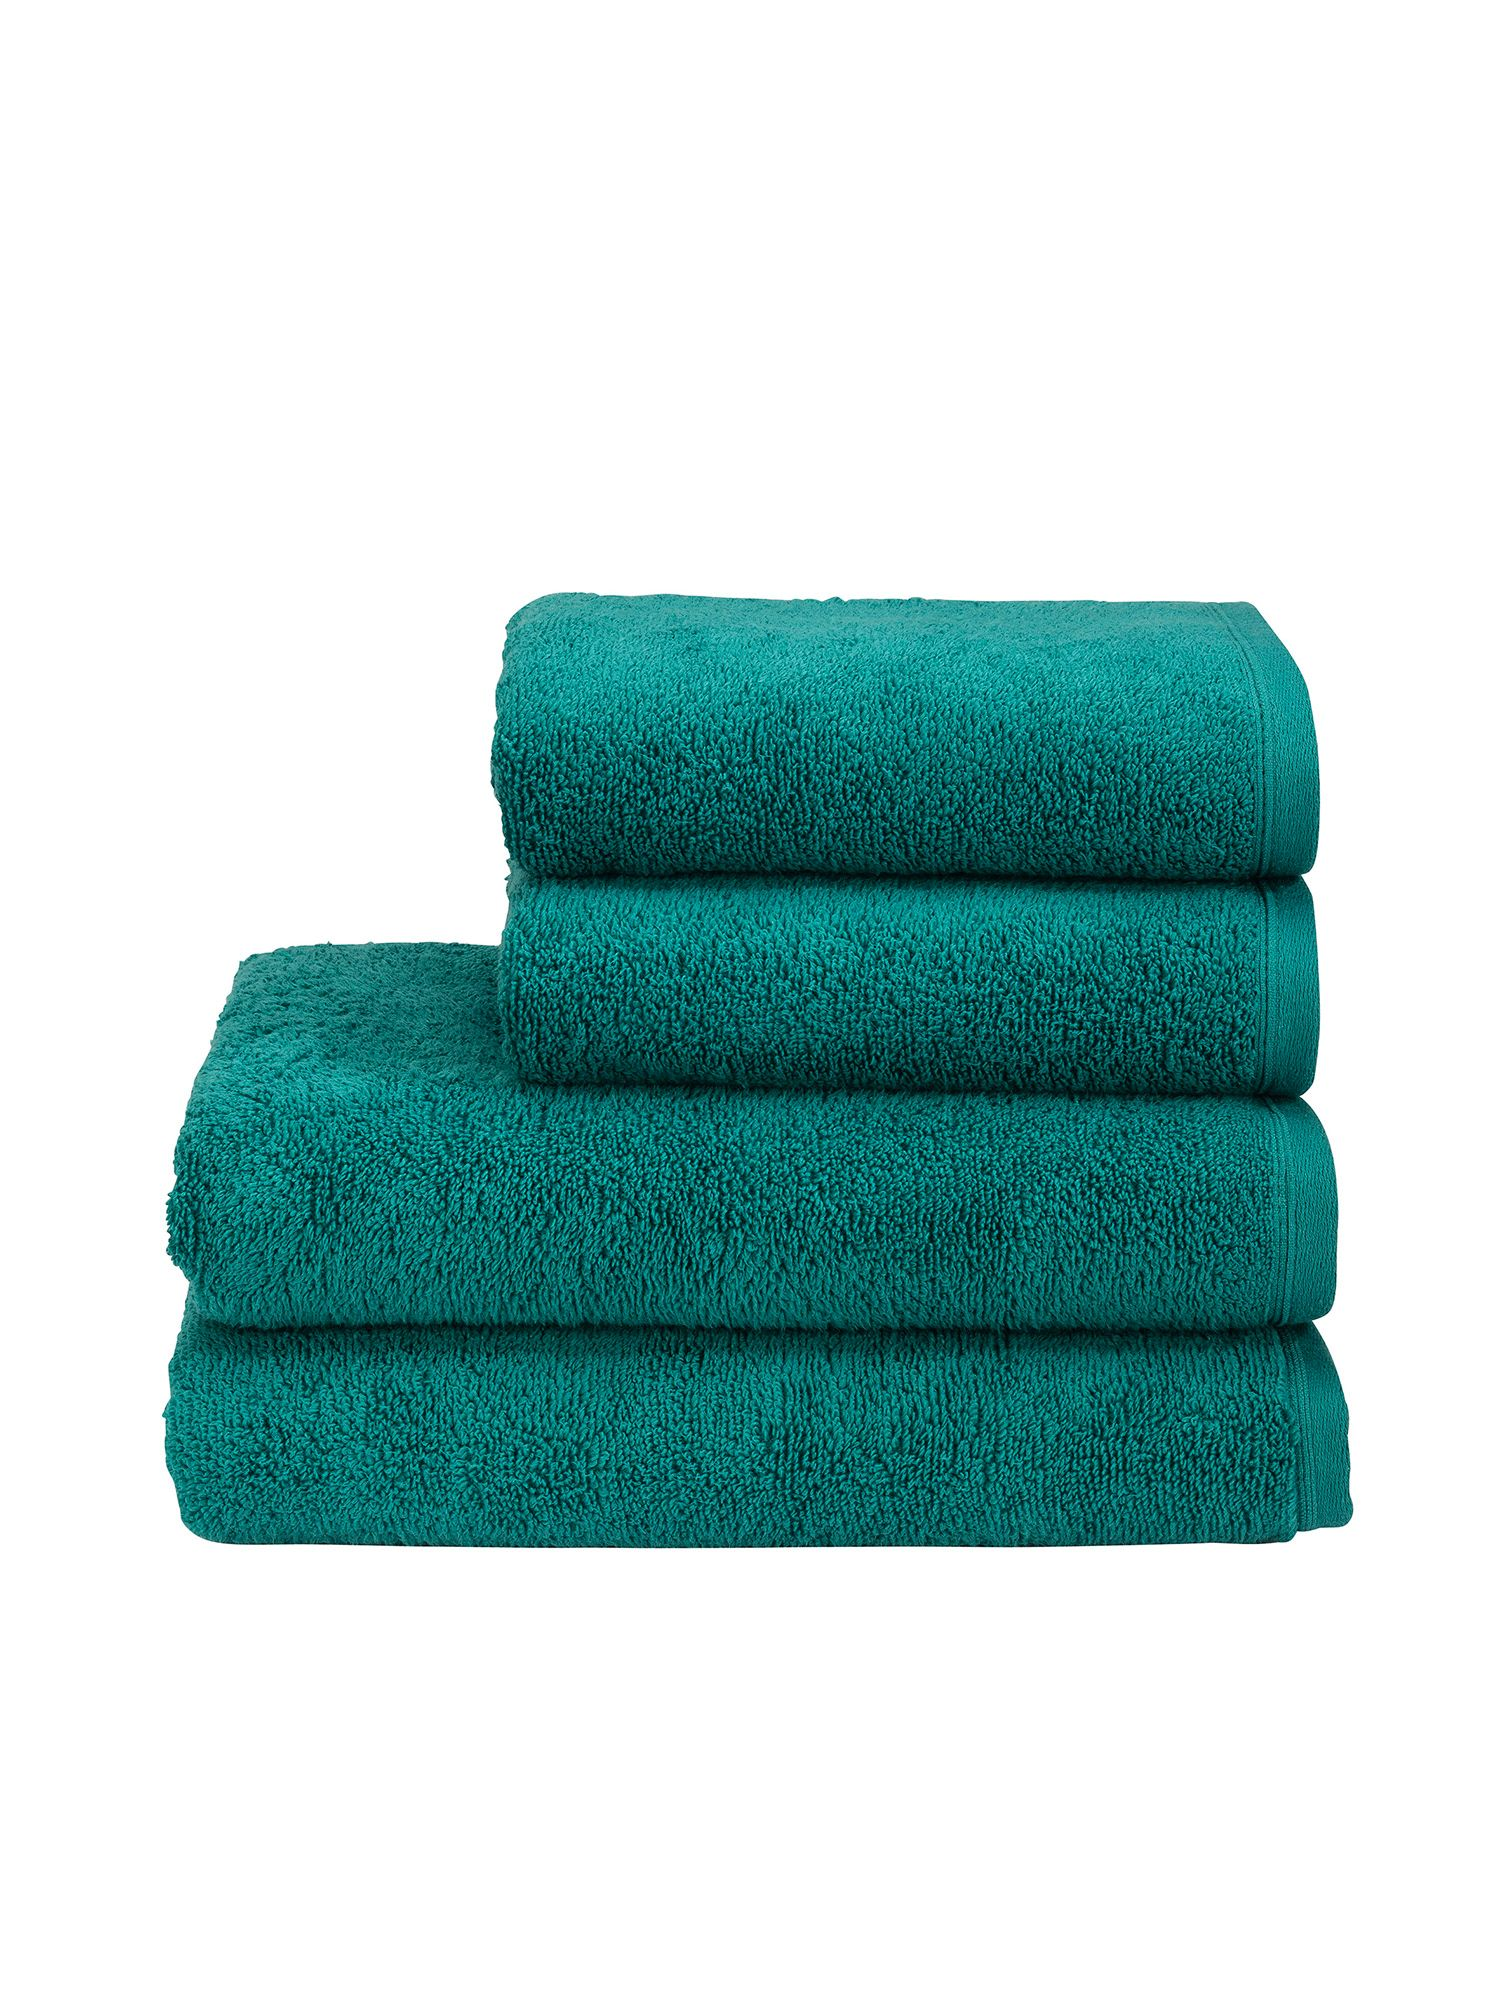 Revive bath towels peacock